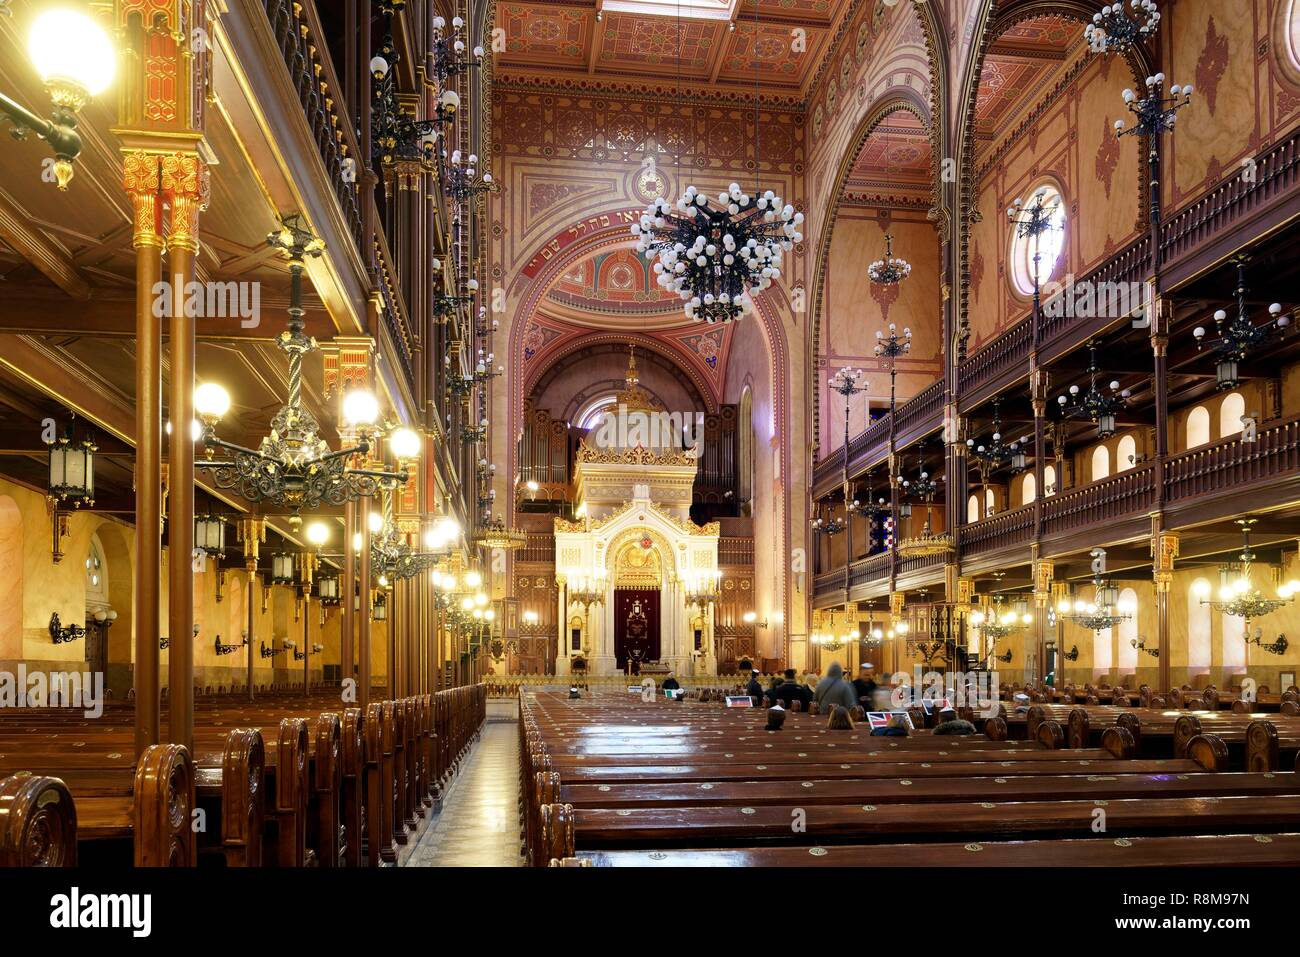 Hungary, Budapest, listed as World Heritage by UNESCO, Pest district, the Great Synagogue or Dohány Street Synagogue, built between 1854 and 1859 by Viennese architect Ludwig Förster in moresque style, has space for 3000 worshippers and is the largest in Europe - Stock Image